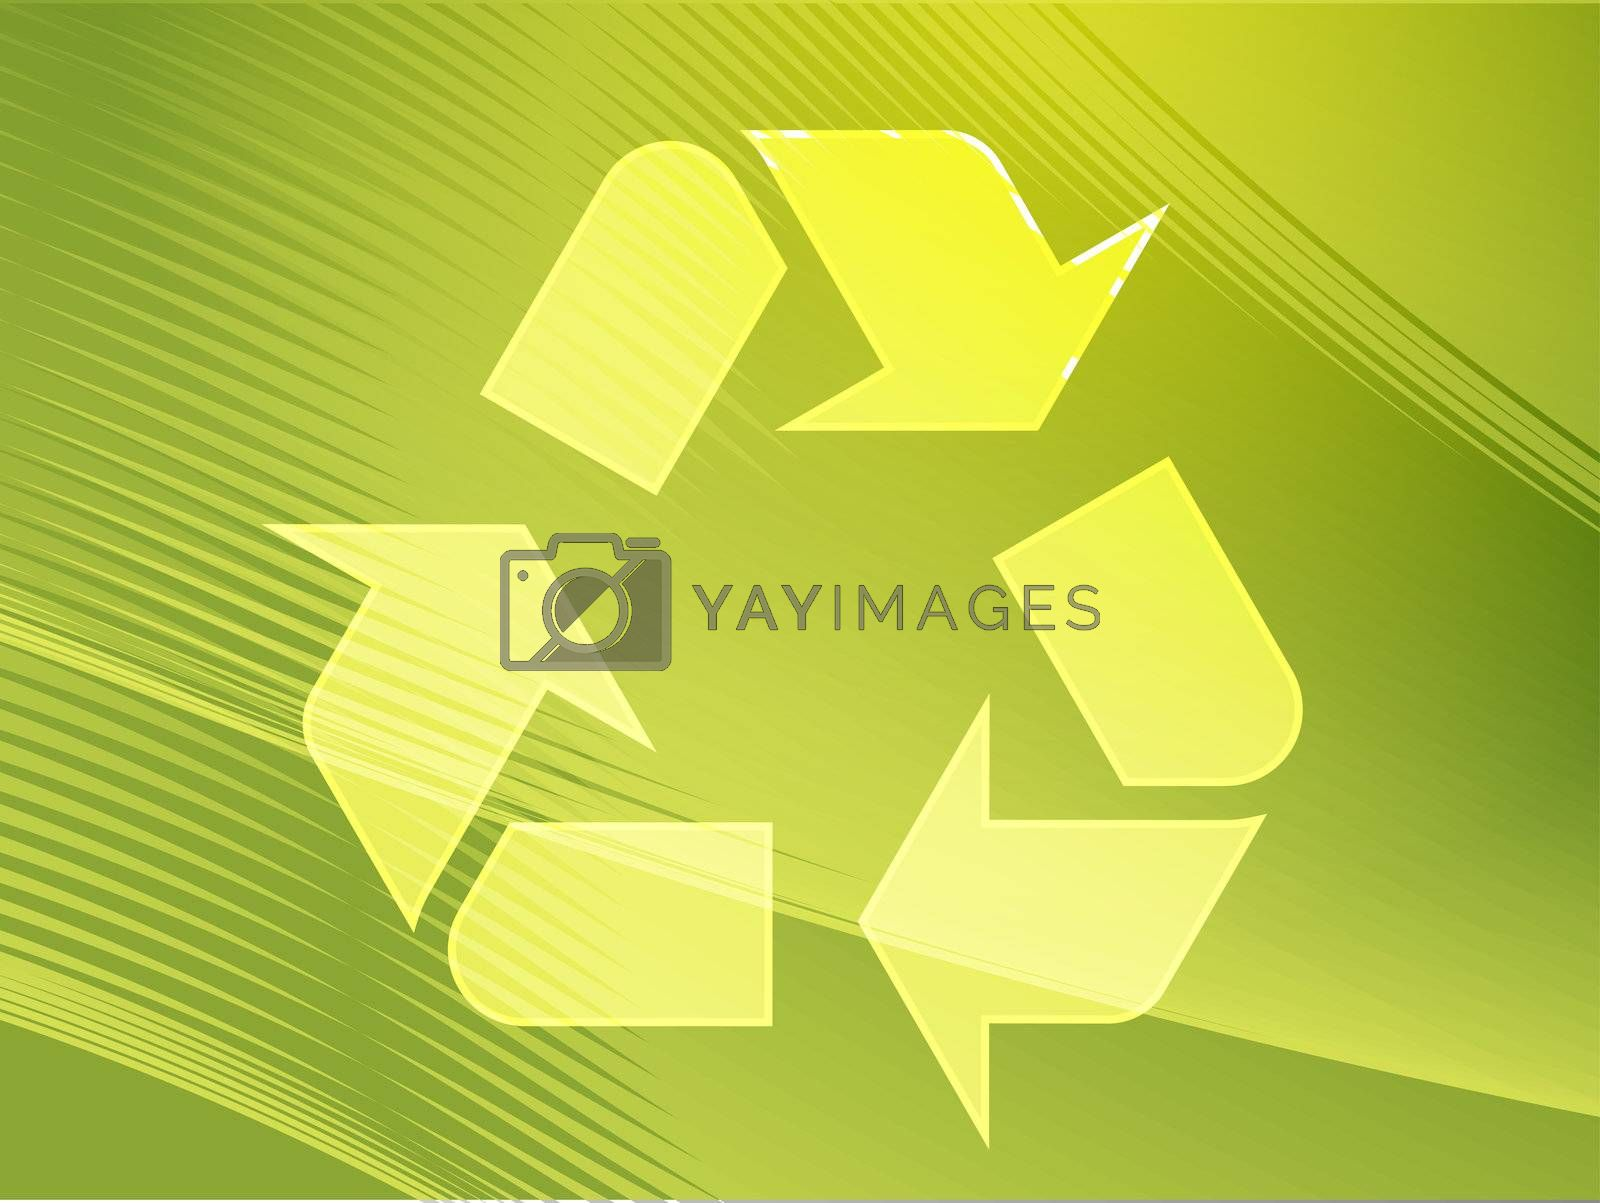 Recycling eco symbol illustration of three pointing arrows on abstract design